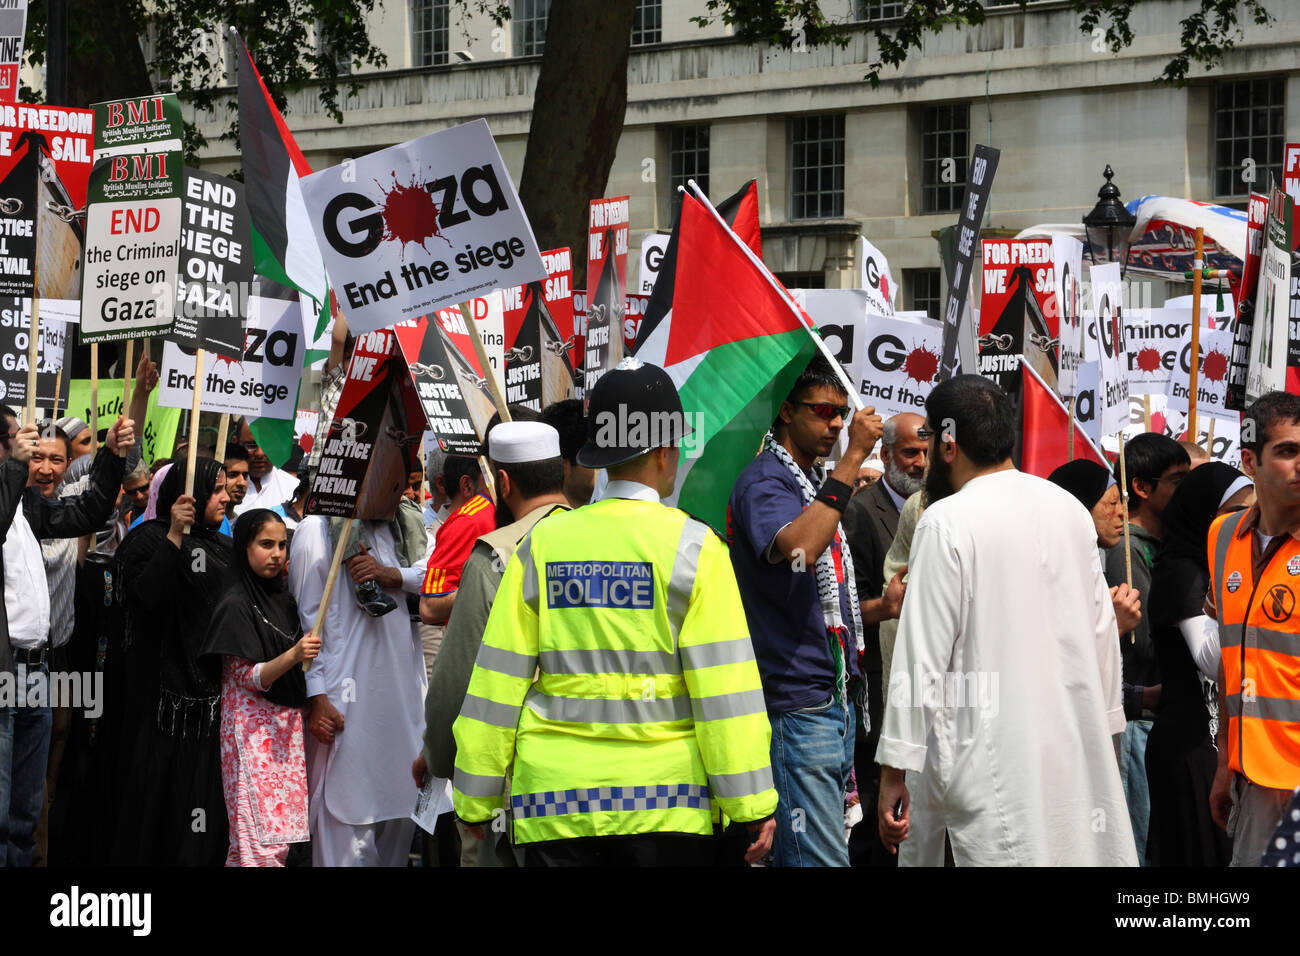 Demonstrators at the 'Freedom for Palestine' demonstration on Whitehall, Westminster, London, England, U.K. - Stock Image